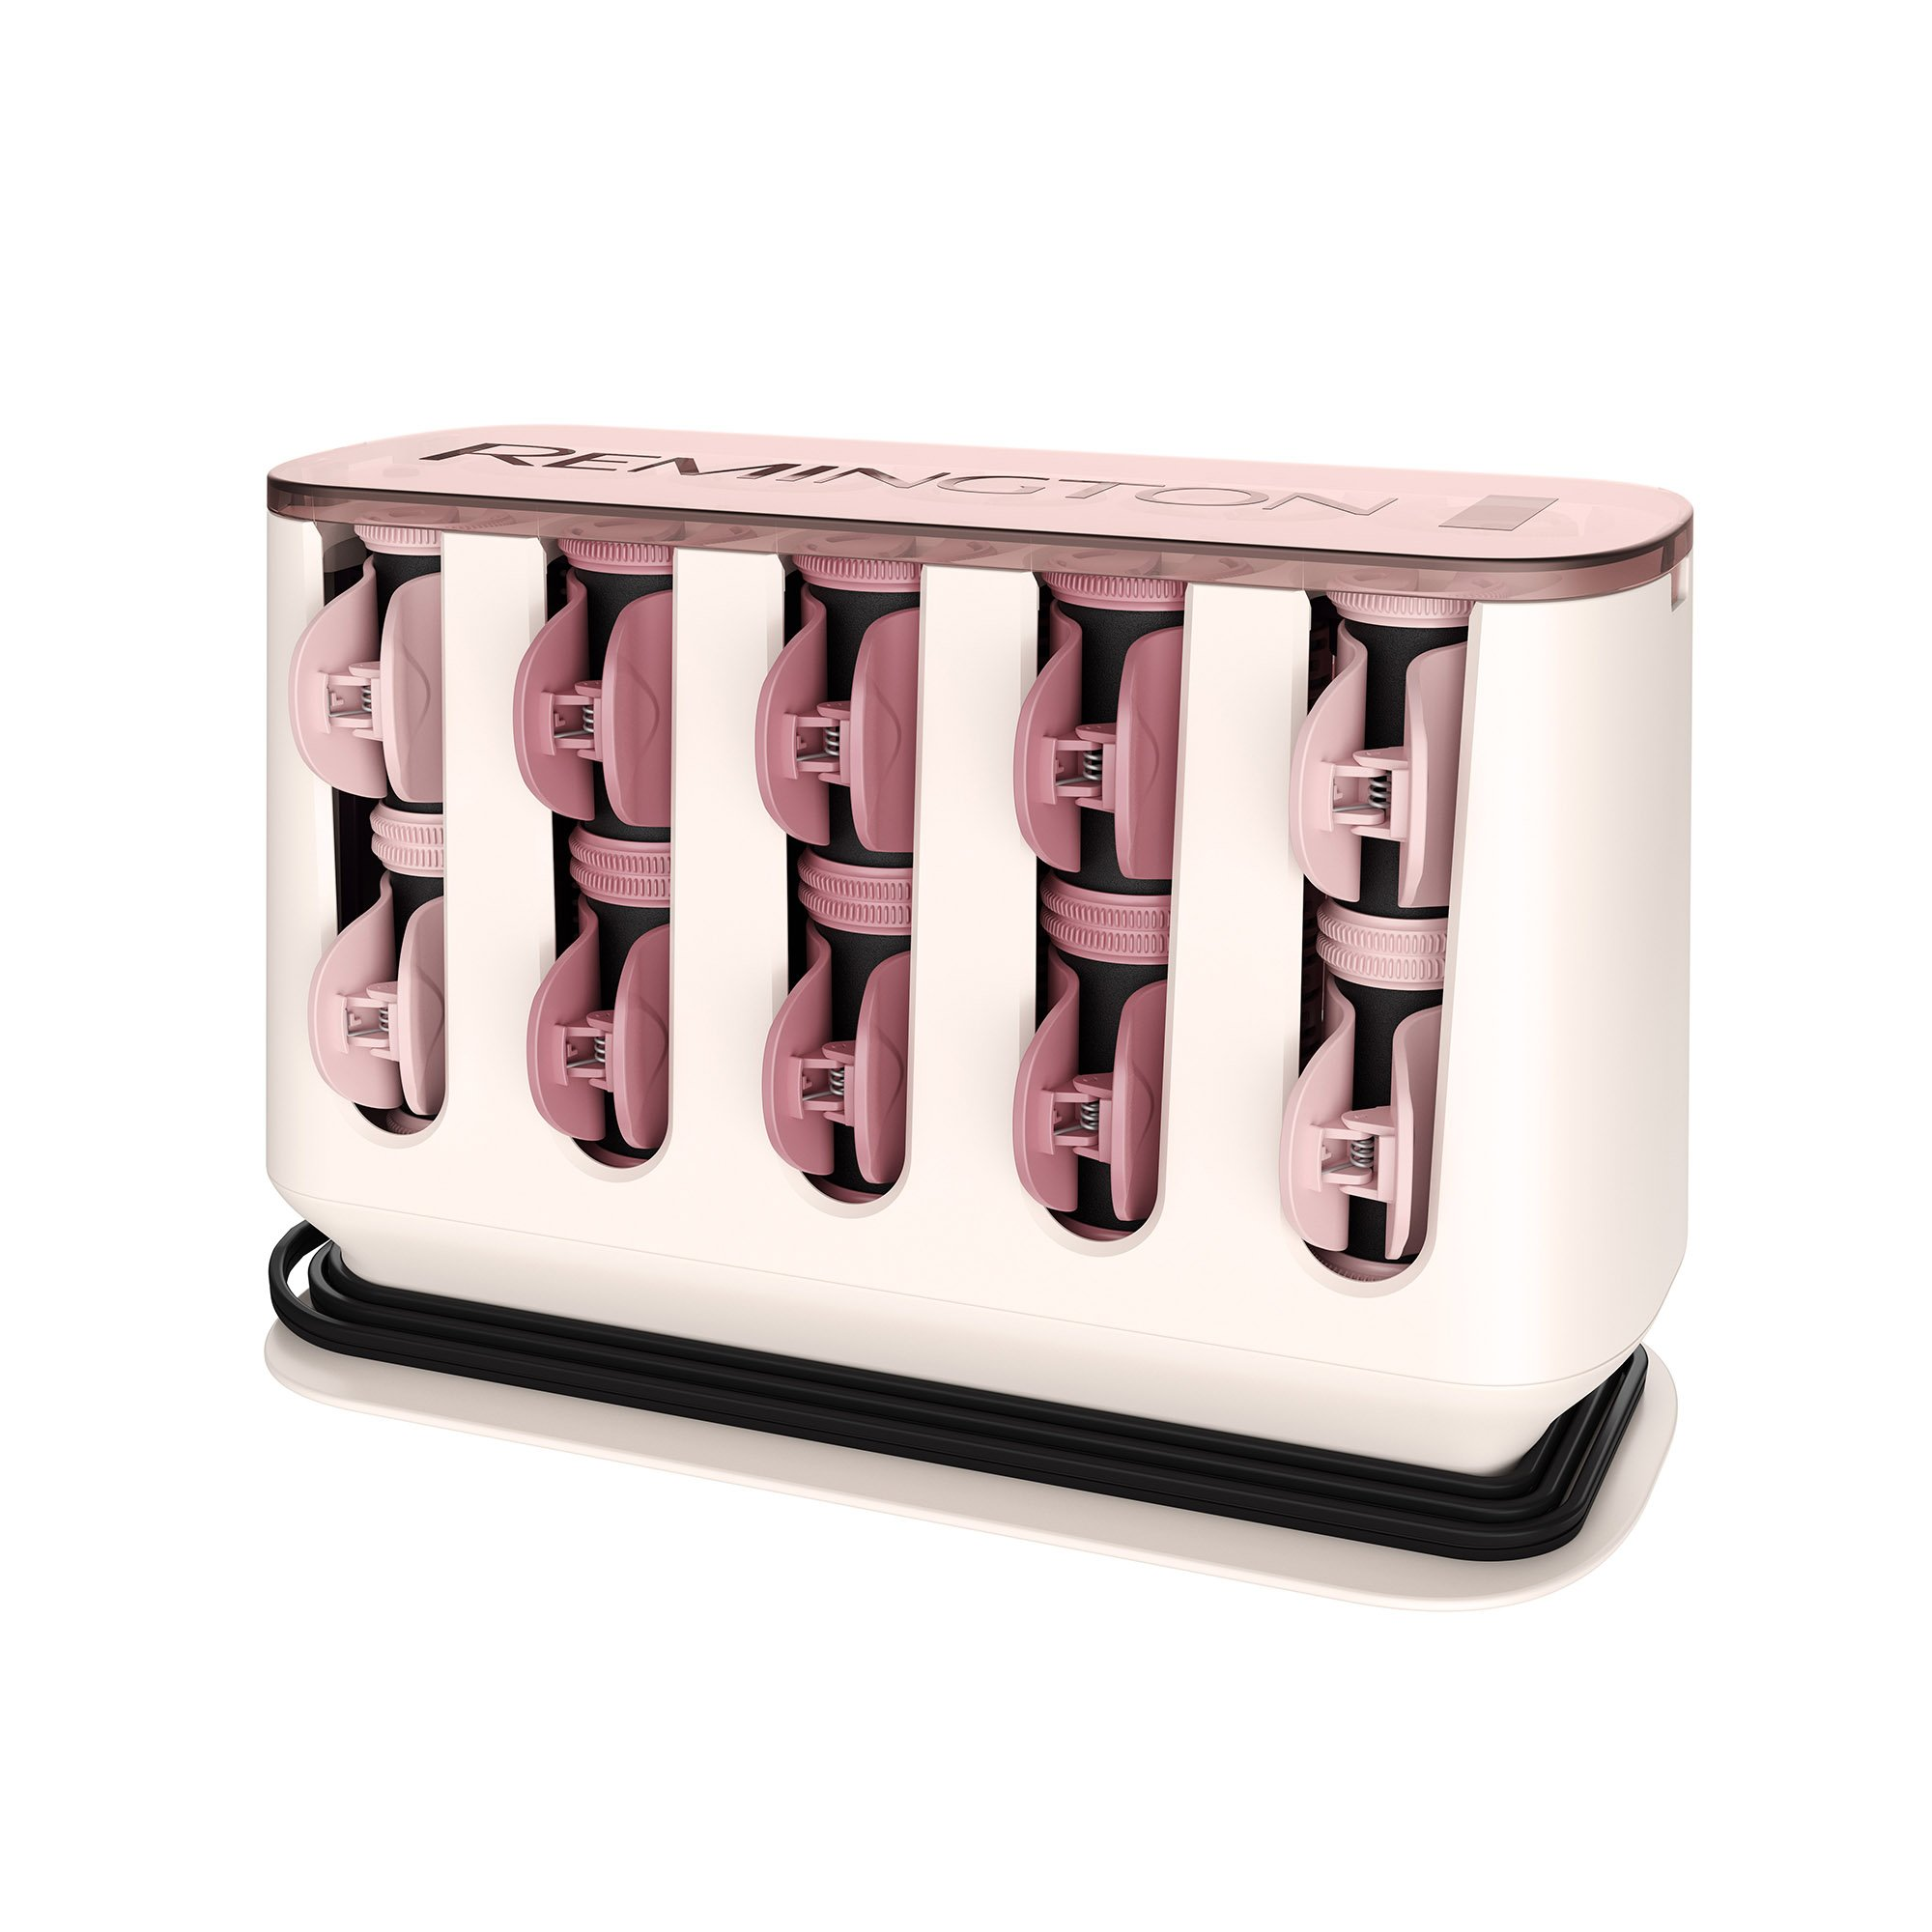 Remington Pro Series H9100P T|Studio Thermaluxe Ceramic Hair Setter, with 2x Ceramic & Bonus Sectioning Clips, Hair Rollers, 1-1 ¼ Inch, Blush Pink